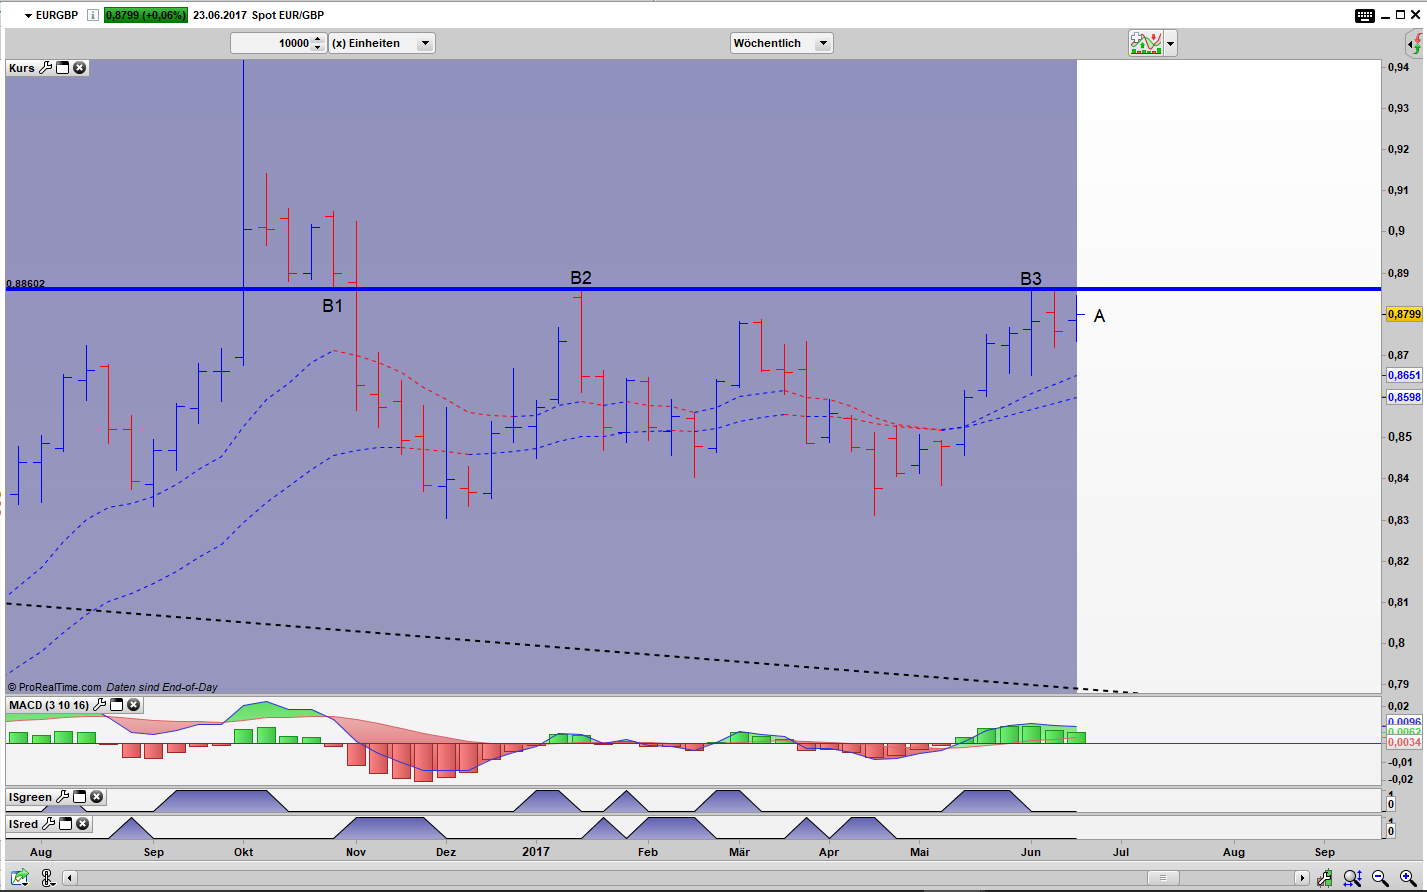 EUR/GBP Wochen Bar Chart: Inside Week Pattern (A)